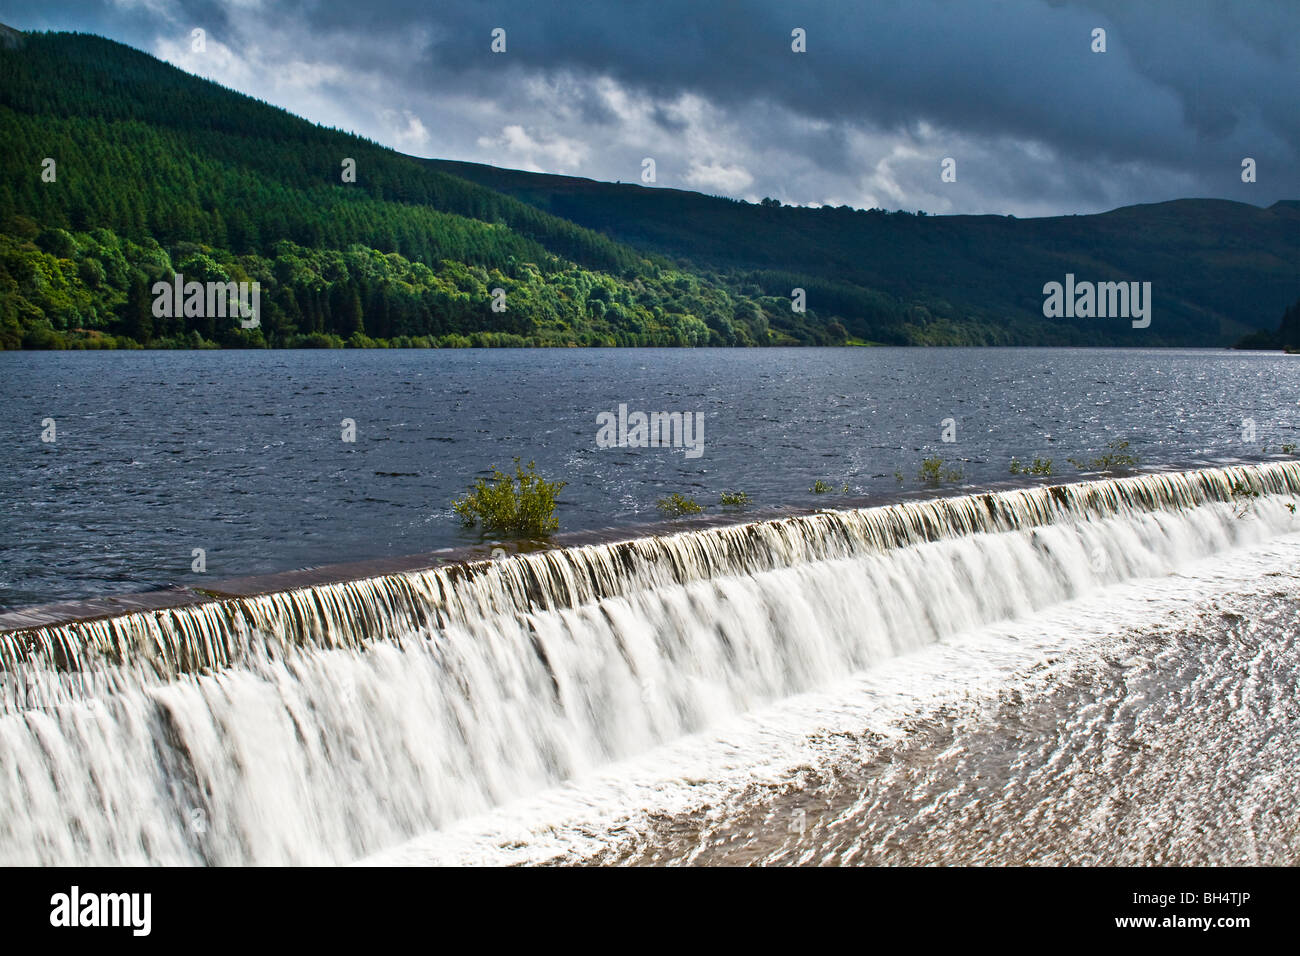 Talybont Reservoir near Talybont-on-Usk in the Brecon Beacons. - Stock Image